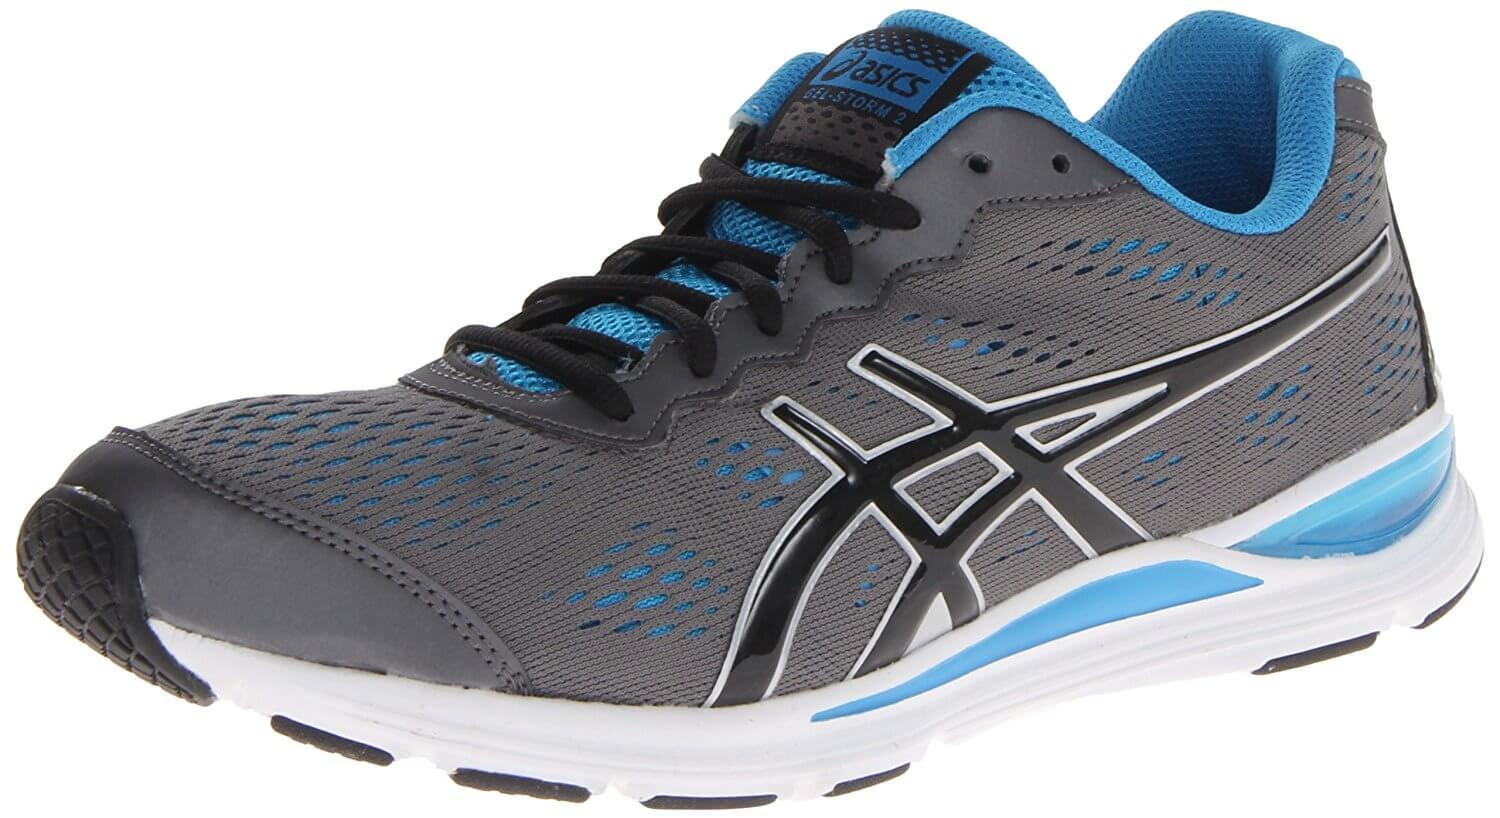 Asics Gel Storm 2 reviewed and tested